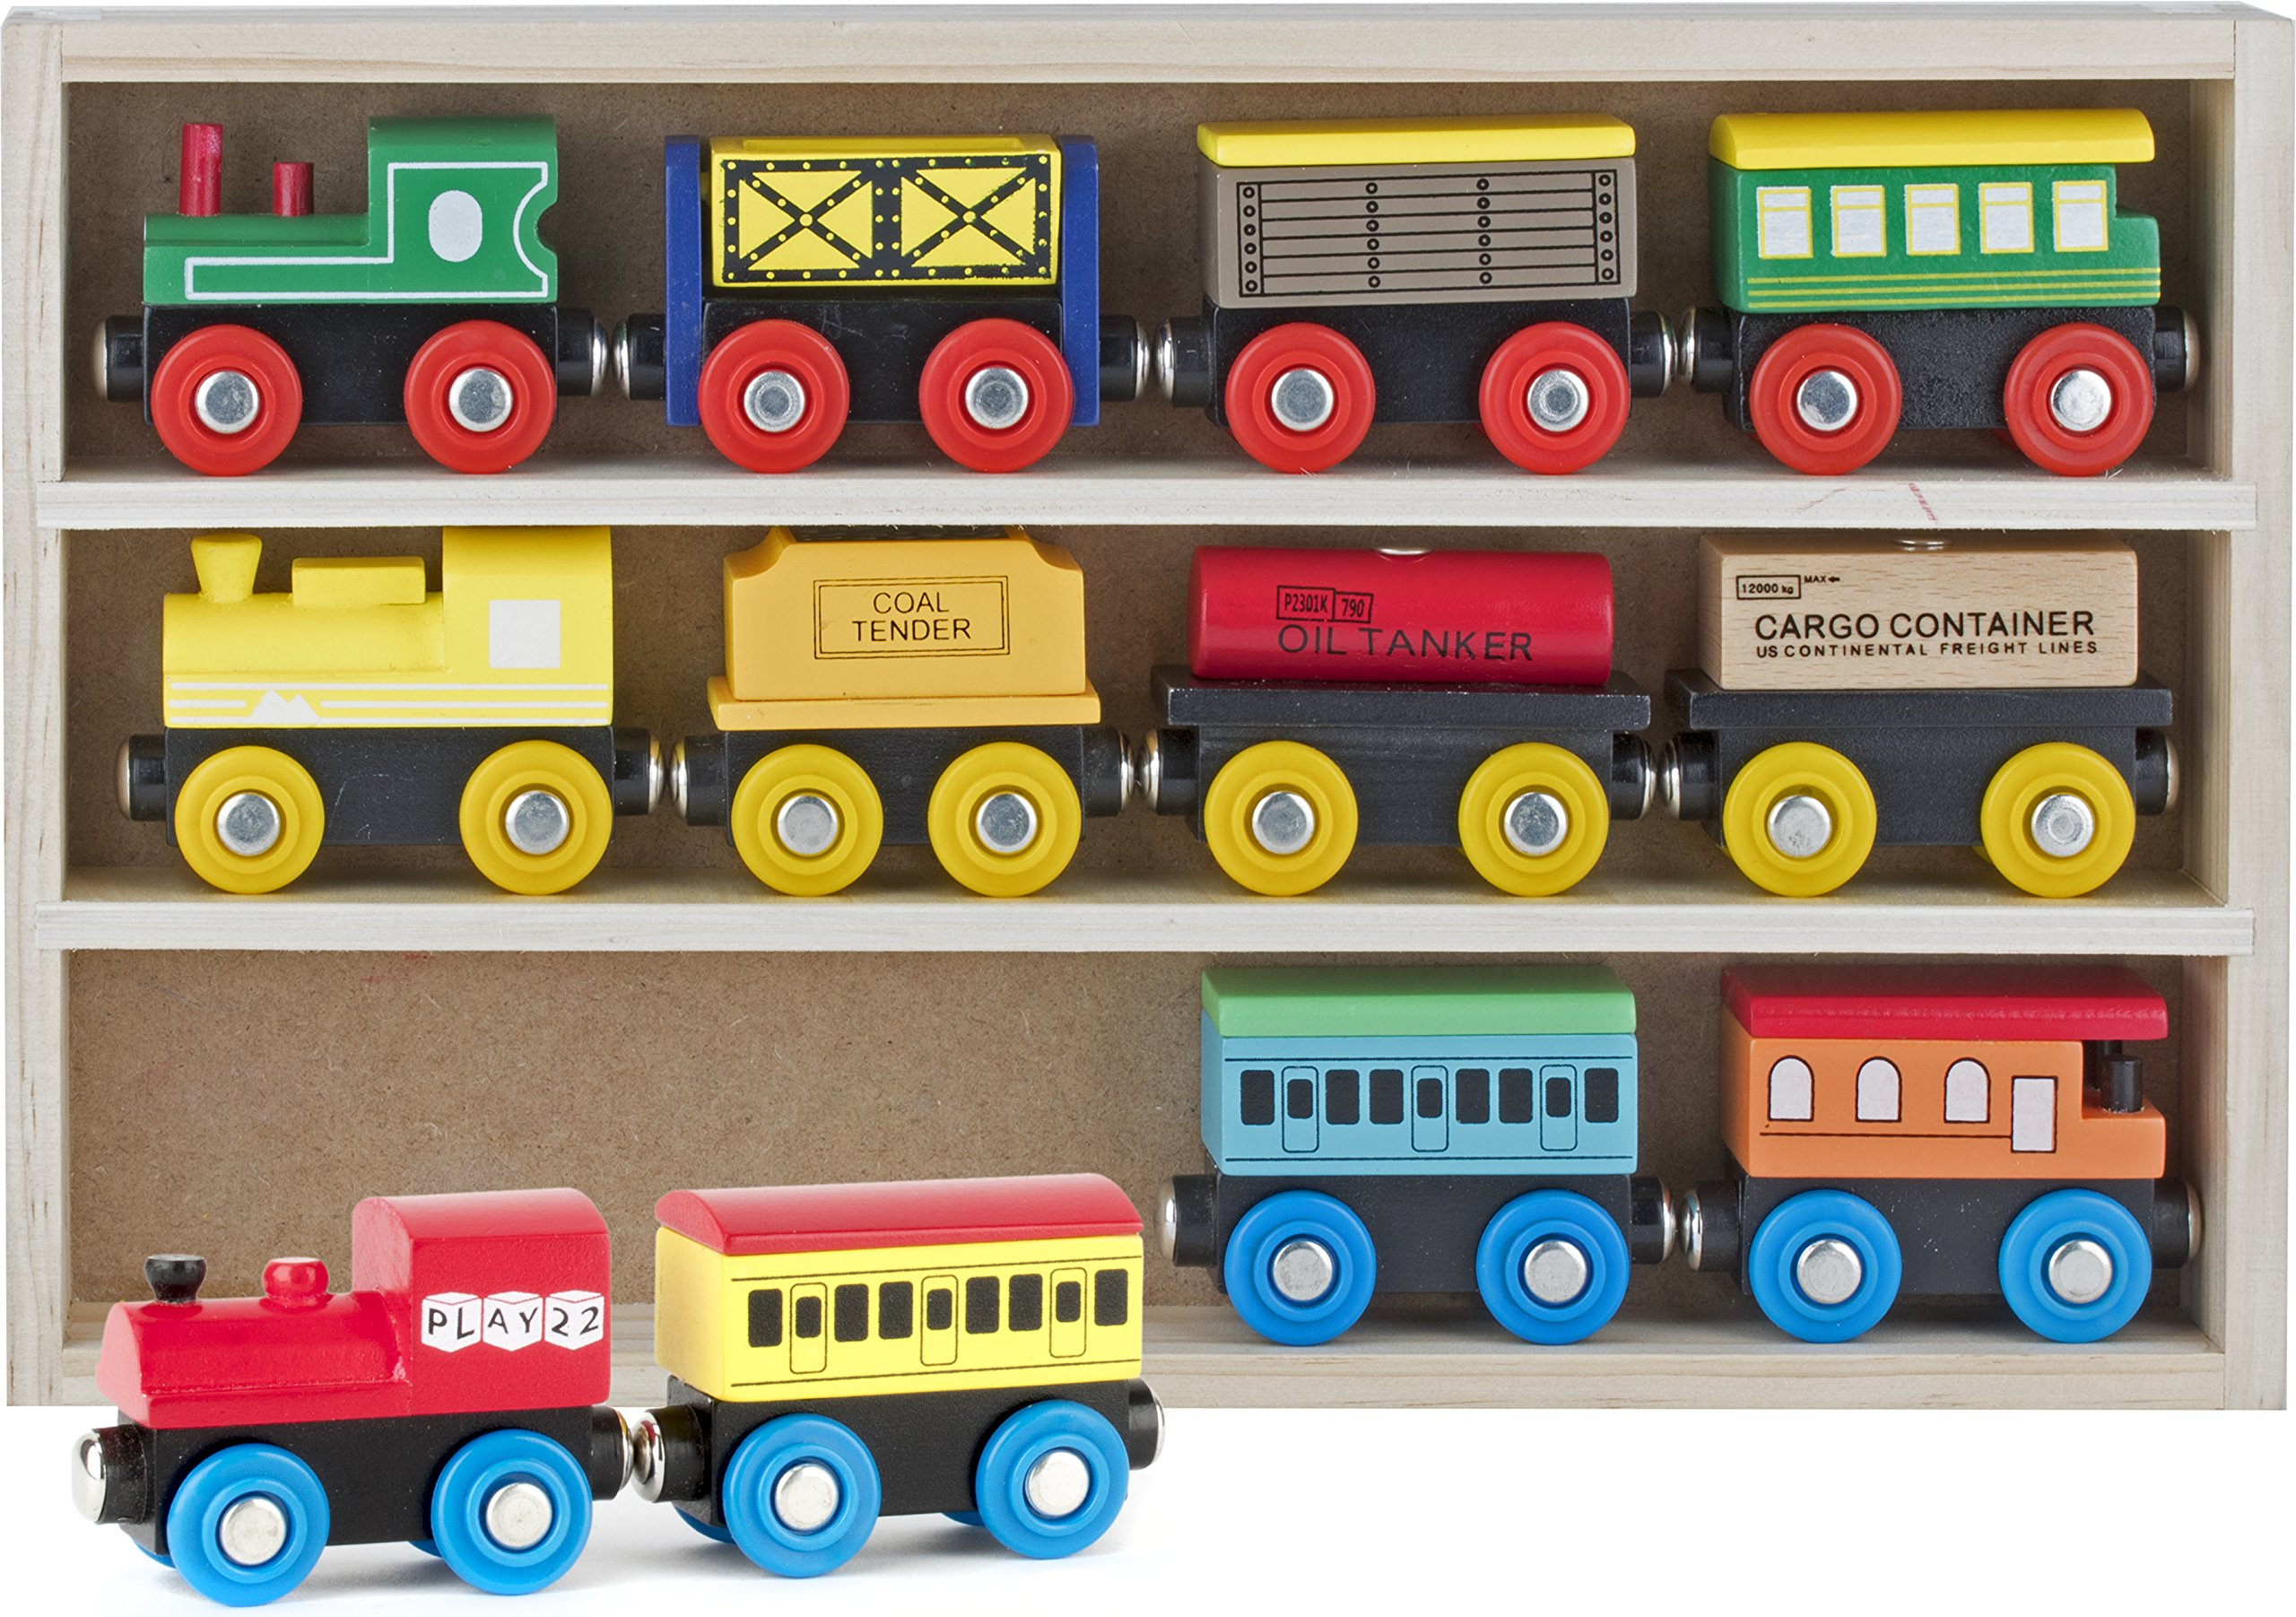 Play22 Wooden Train Set 12 PCS - Train Toys Magnetic Set Includes 3 Engines - Toy Train Sets For Kids Toddler Boys And Girls - Compatible With Thomas Train Set Tracks And Major Brands - Original by Play22